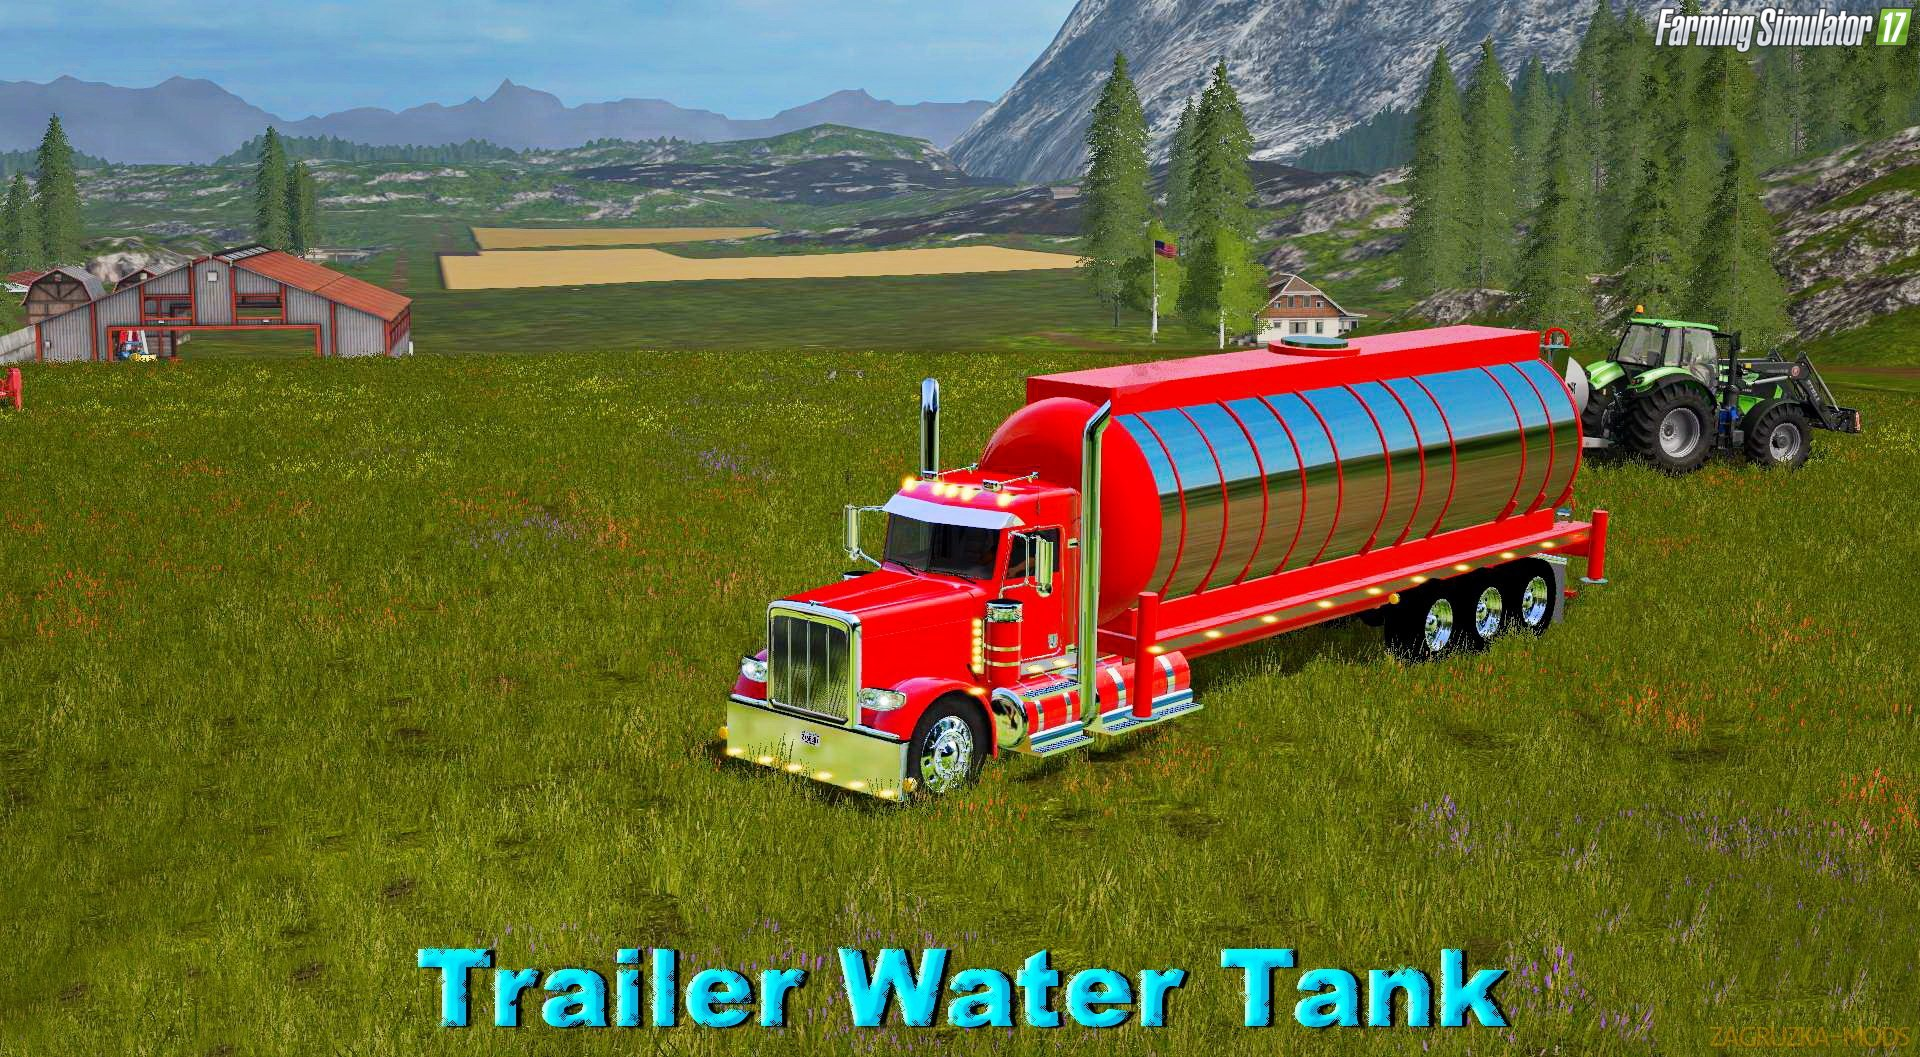 Trailer Water Tank for Peterbilt 388 Custom v1.0 for FS 17